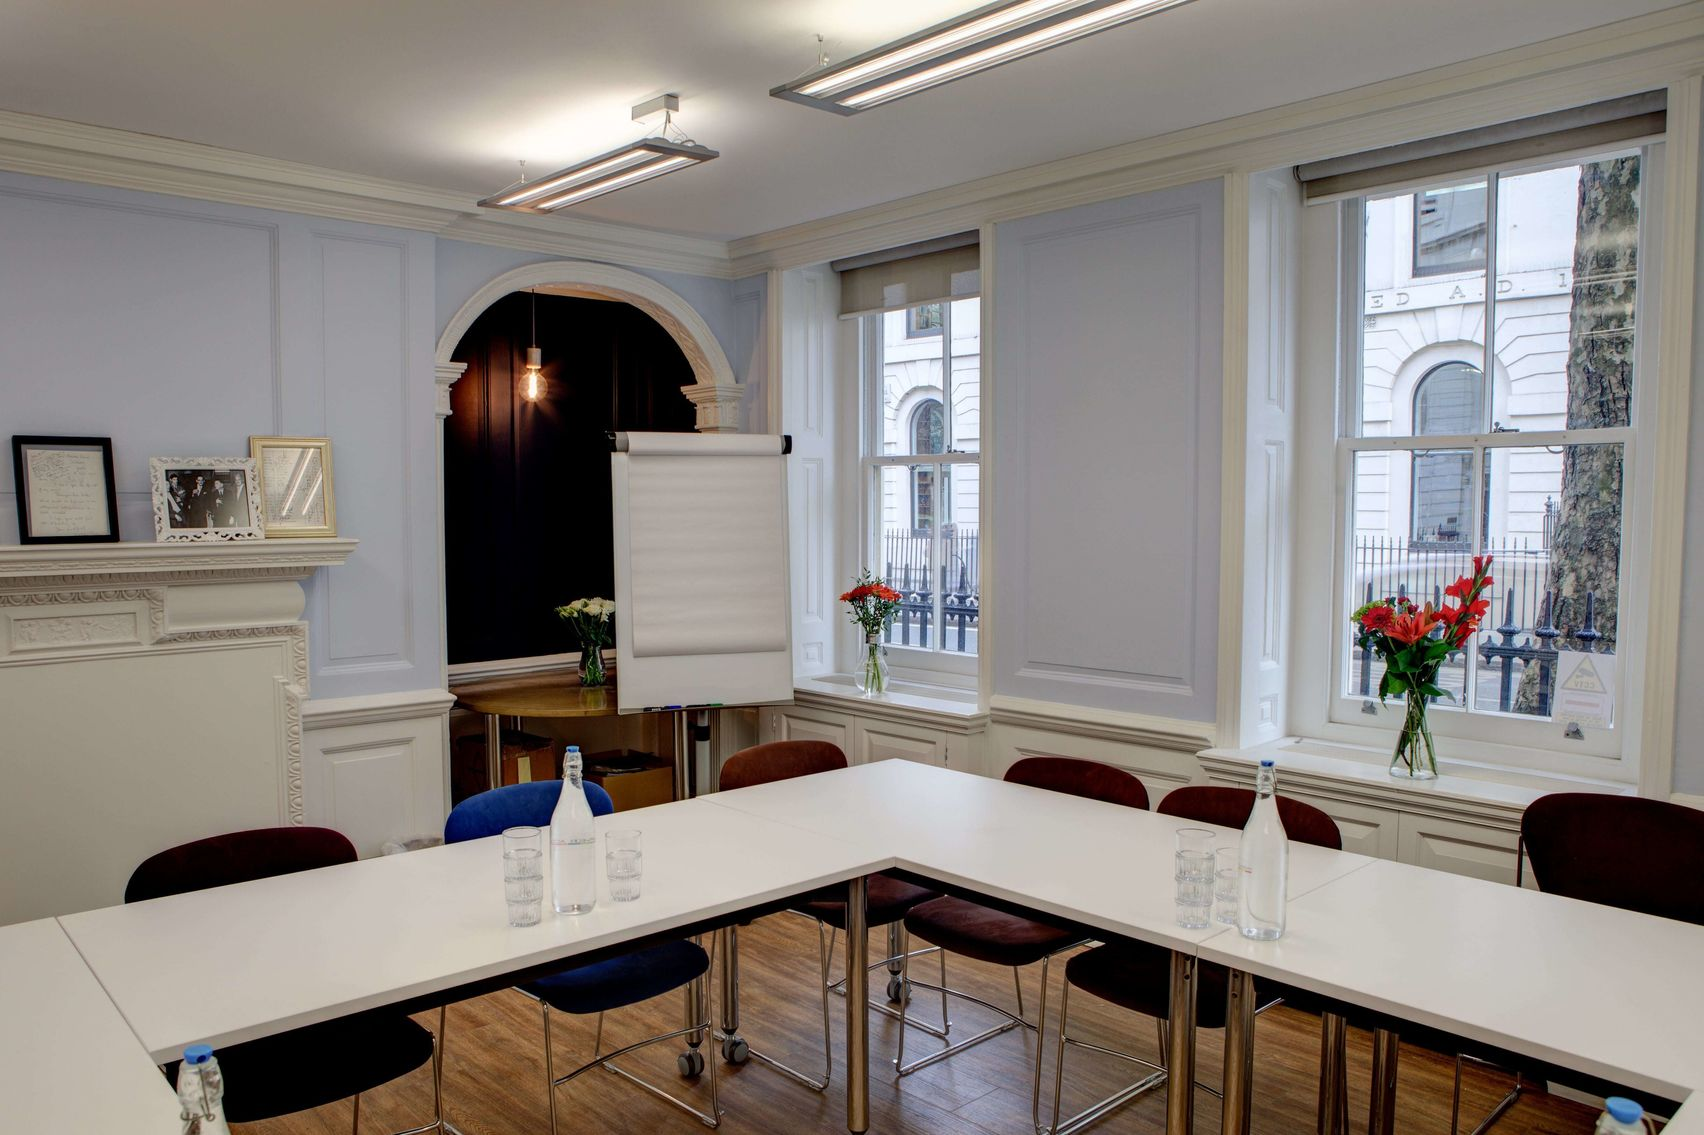 Prufrock Meeting Room, Faber Creative Spaces